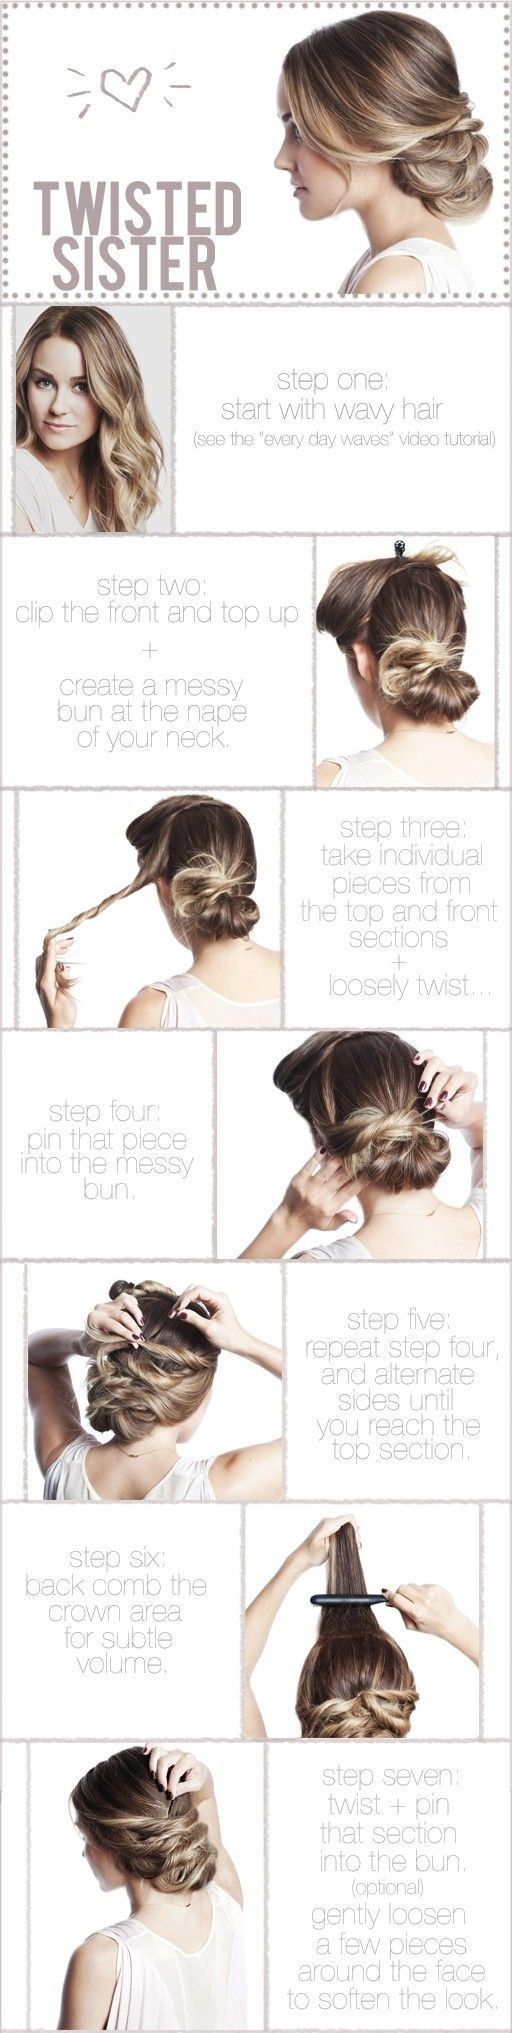 Cute hairstyle tips for the girls even with these great step by